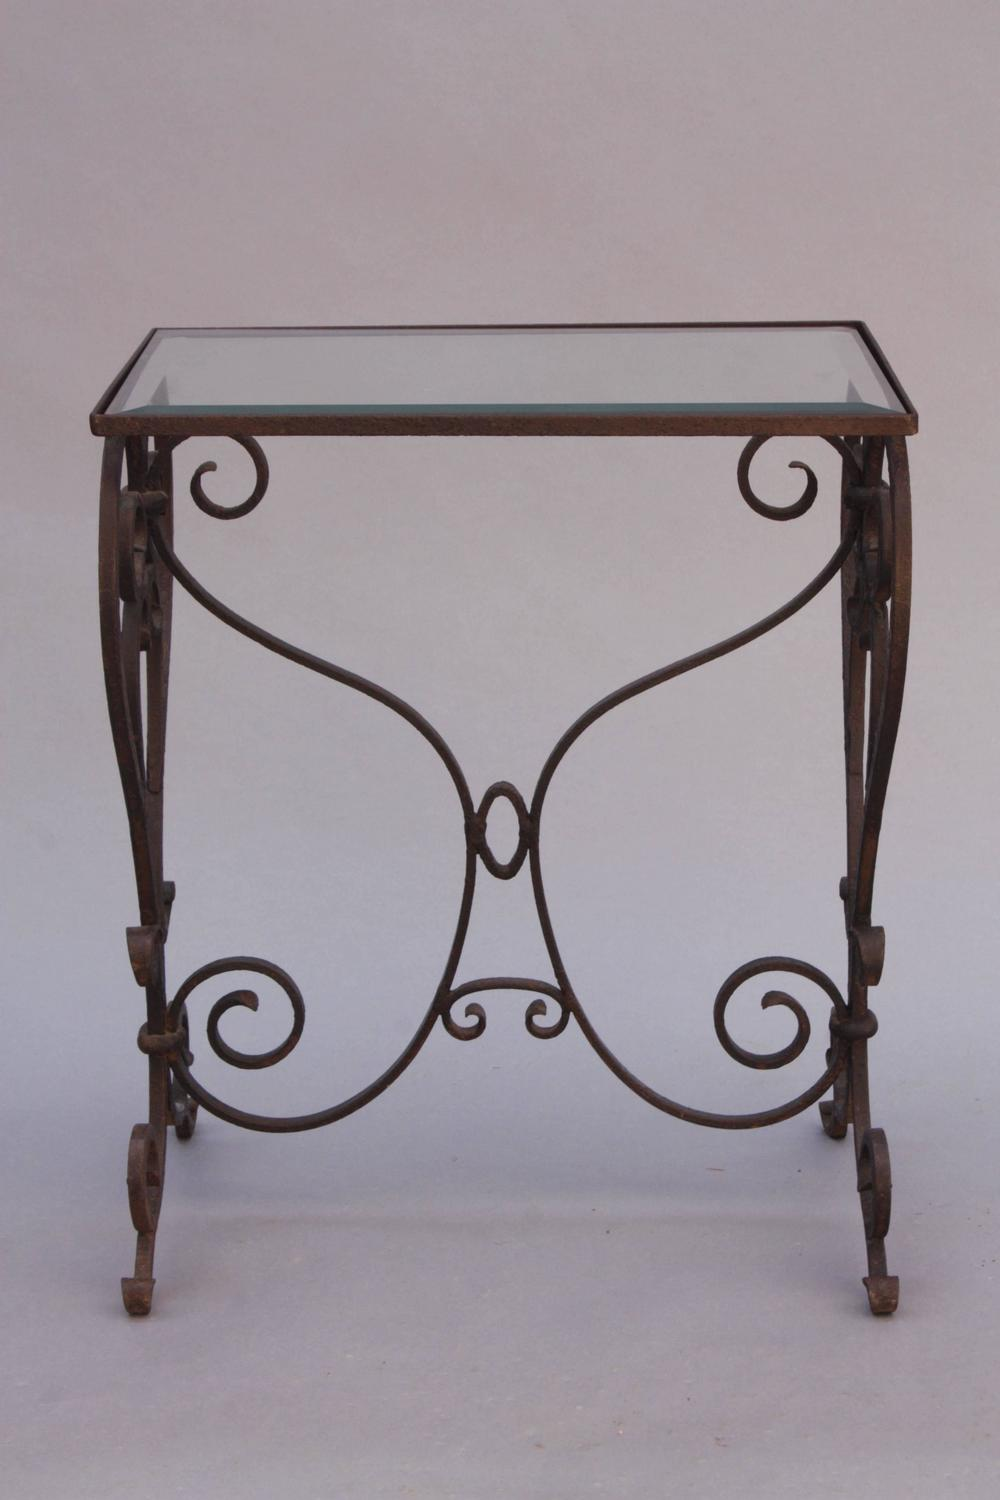 Wrought iron side table with glass top for sale at 1stdibs for Wrought iron and glass side tables